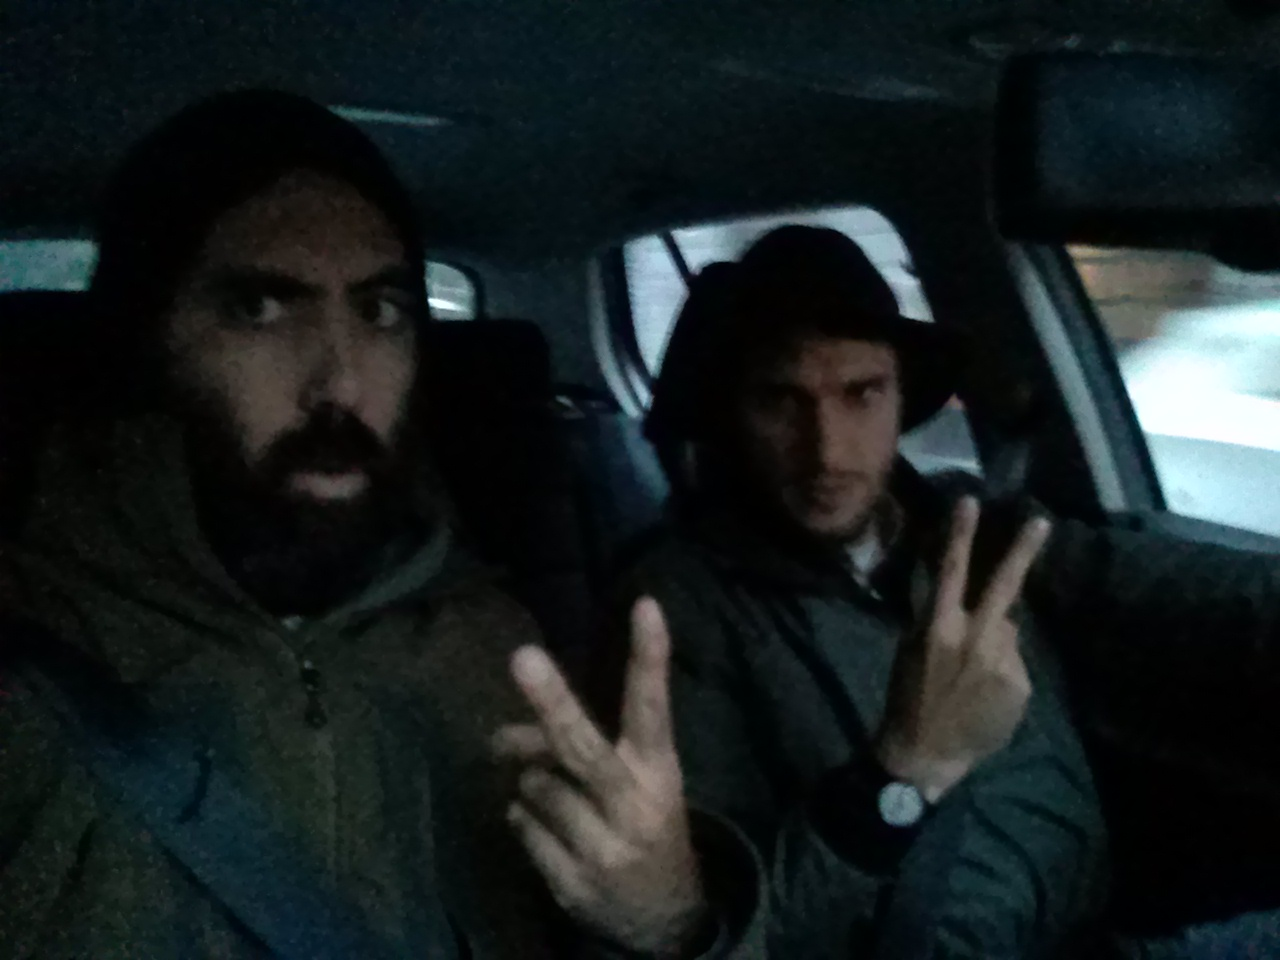 Francis e Pietro on the road